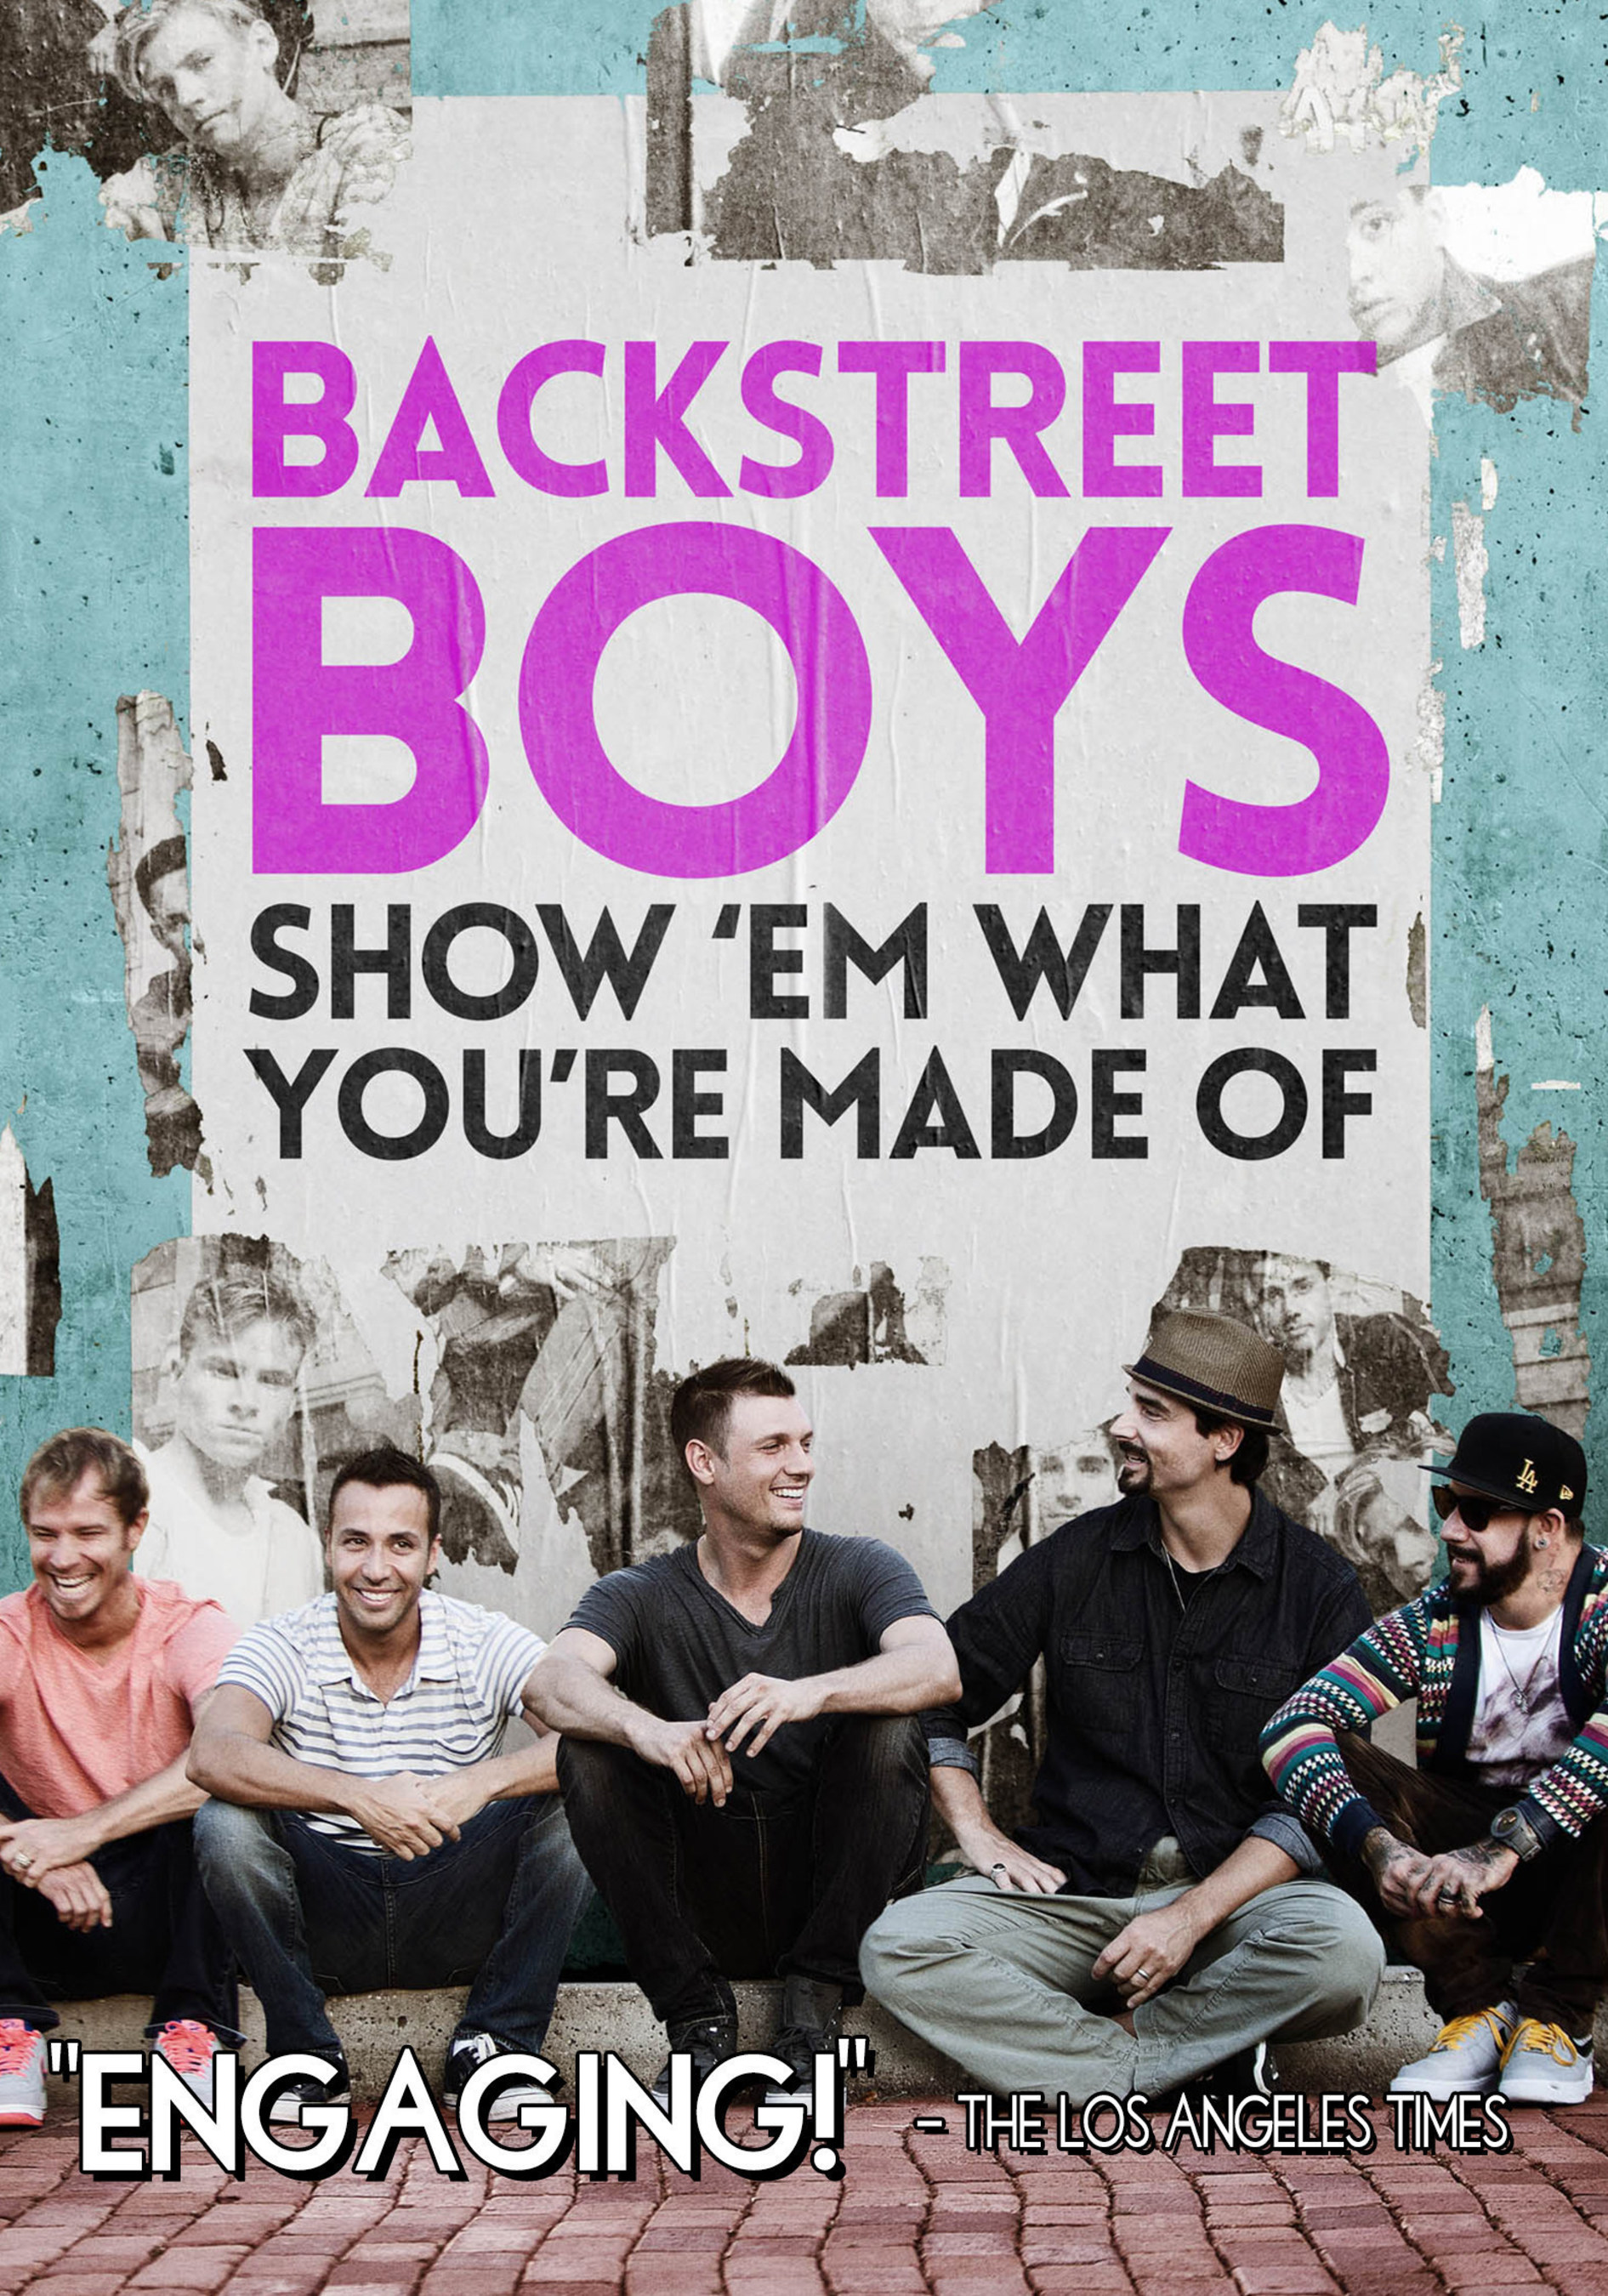 FilmRise Acquires DVD Rights To Music Doc 'Backstreet Boys: Show 'Em What You're Made Of'